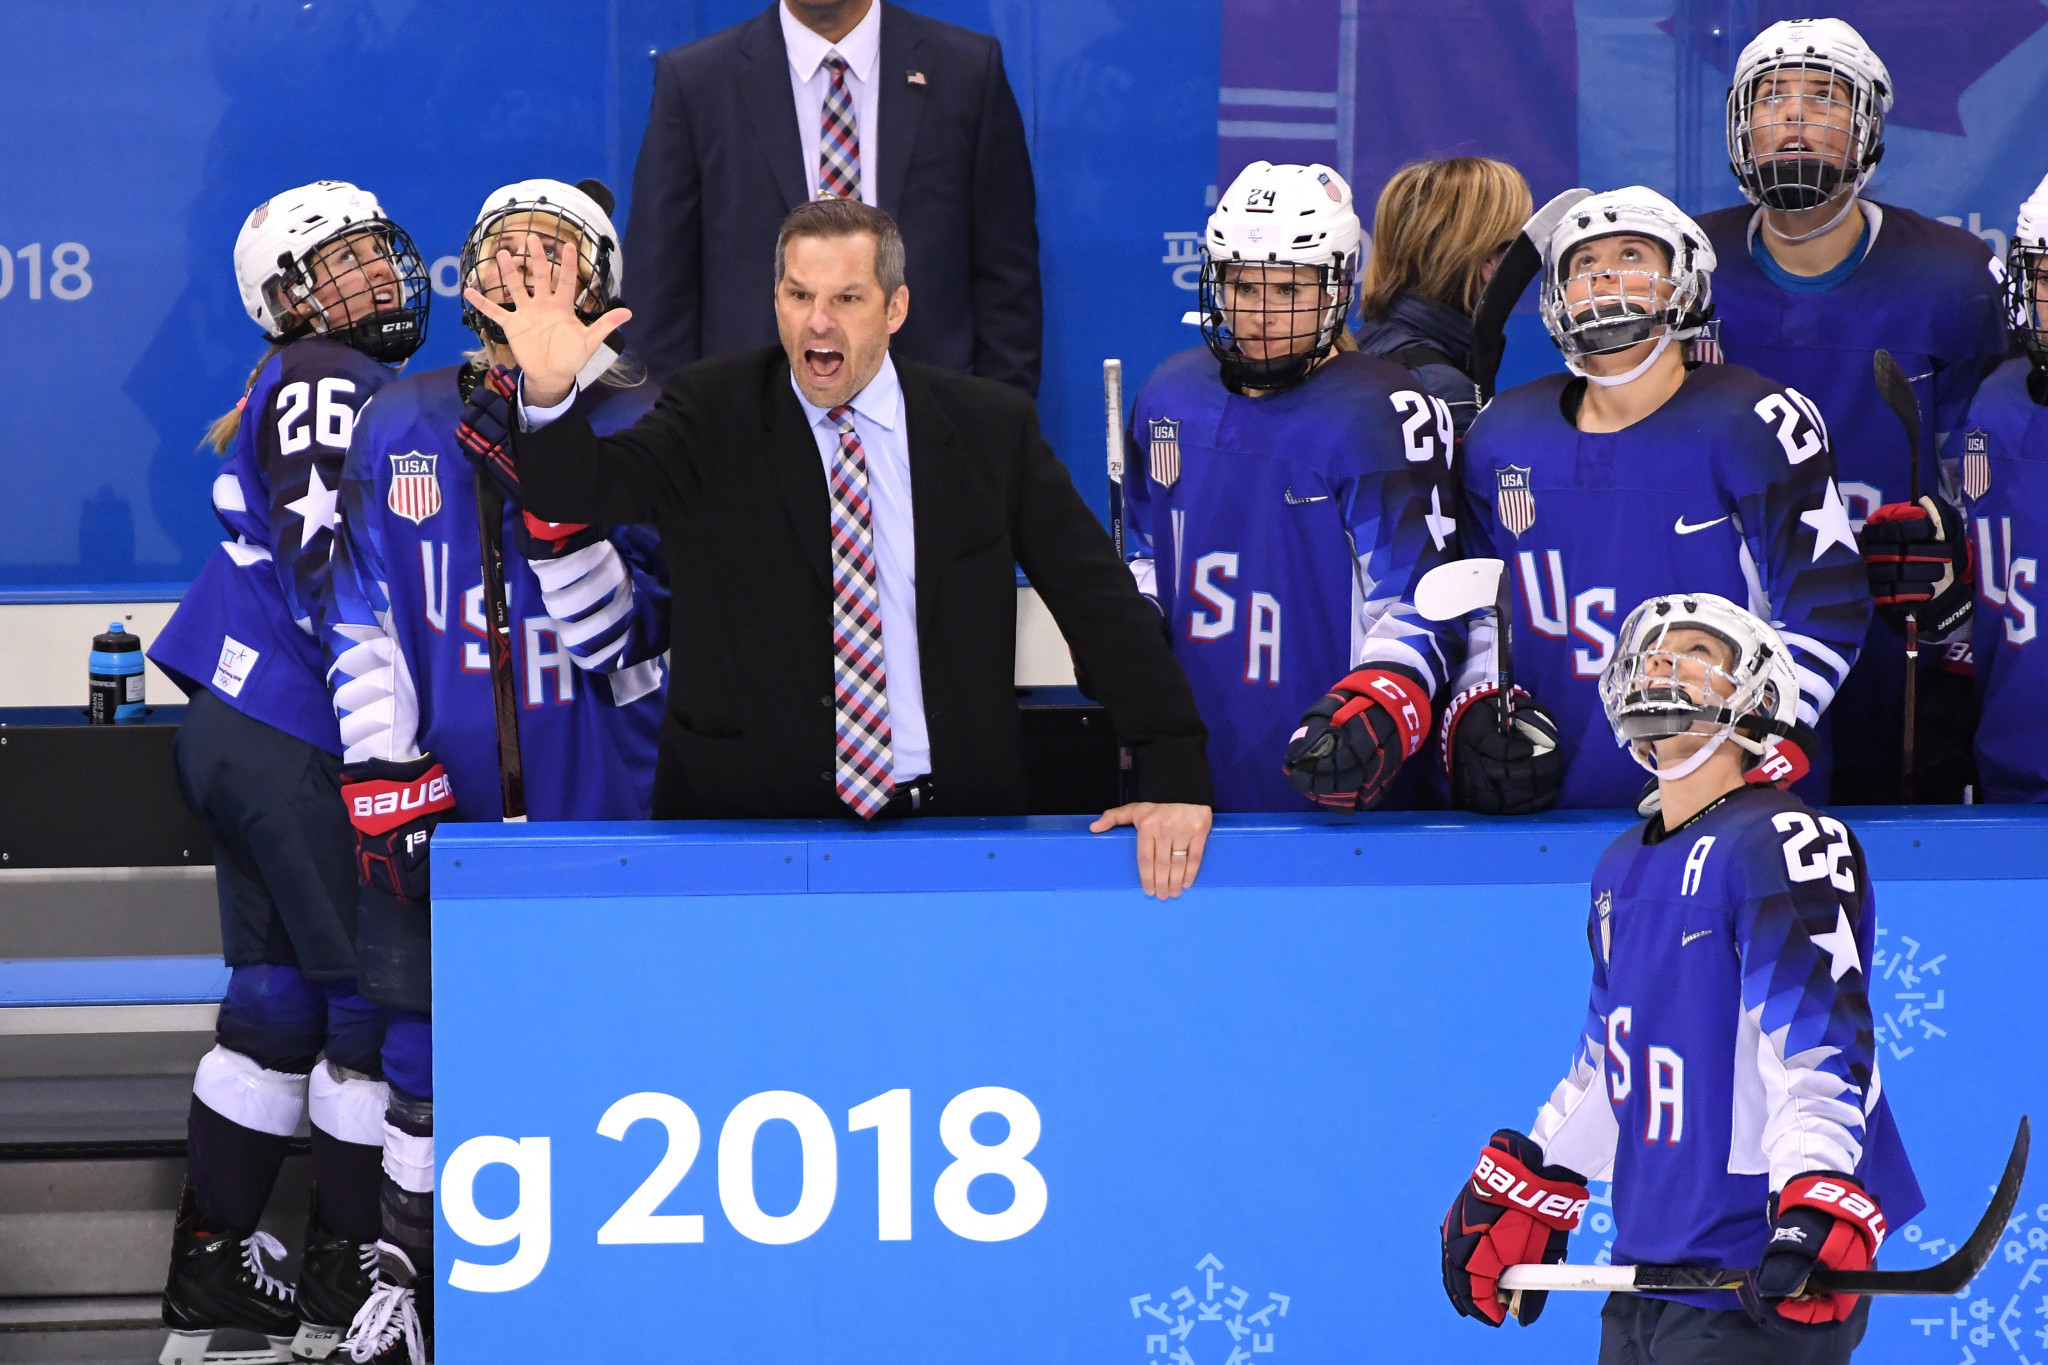 Robb Stauber guided the United States' women's ice hockey team to the Olympic gold medal at Pyeongchang 2018 ©Getty Images